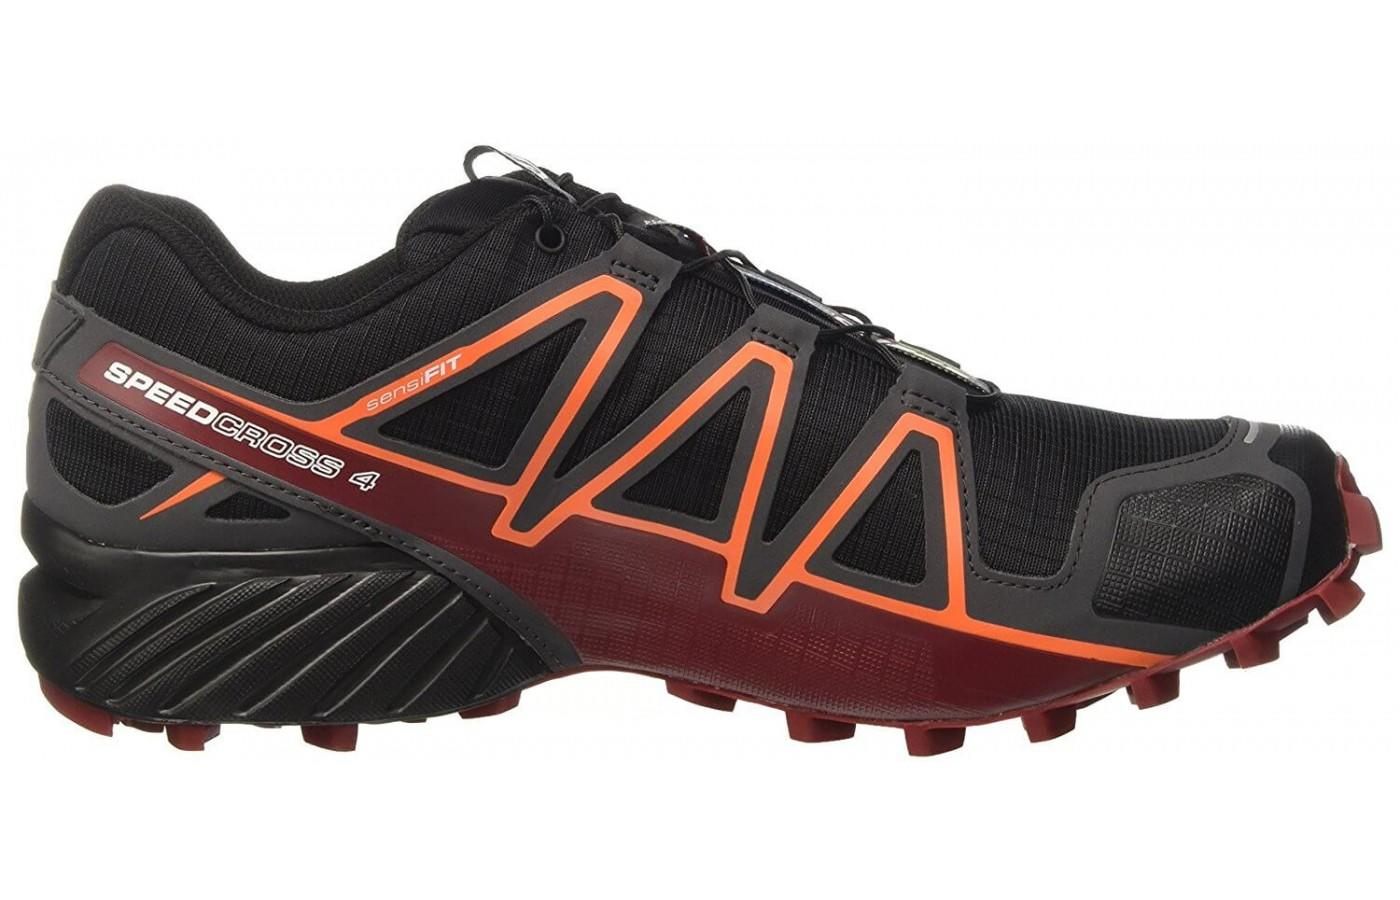 This shoe features an IMEVA midsole for added cushioning and responsiveness